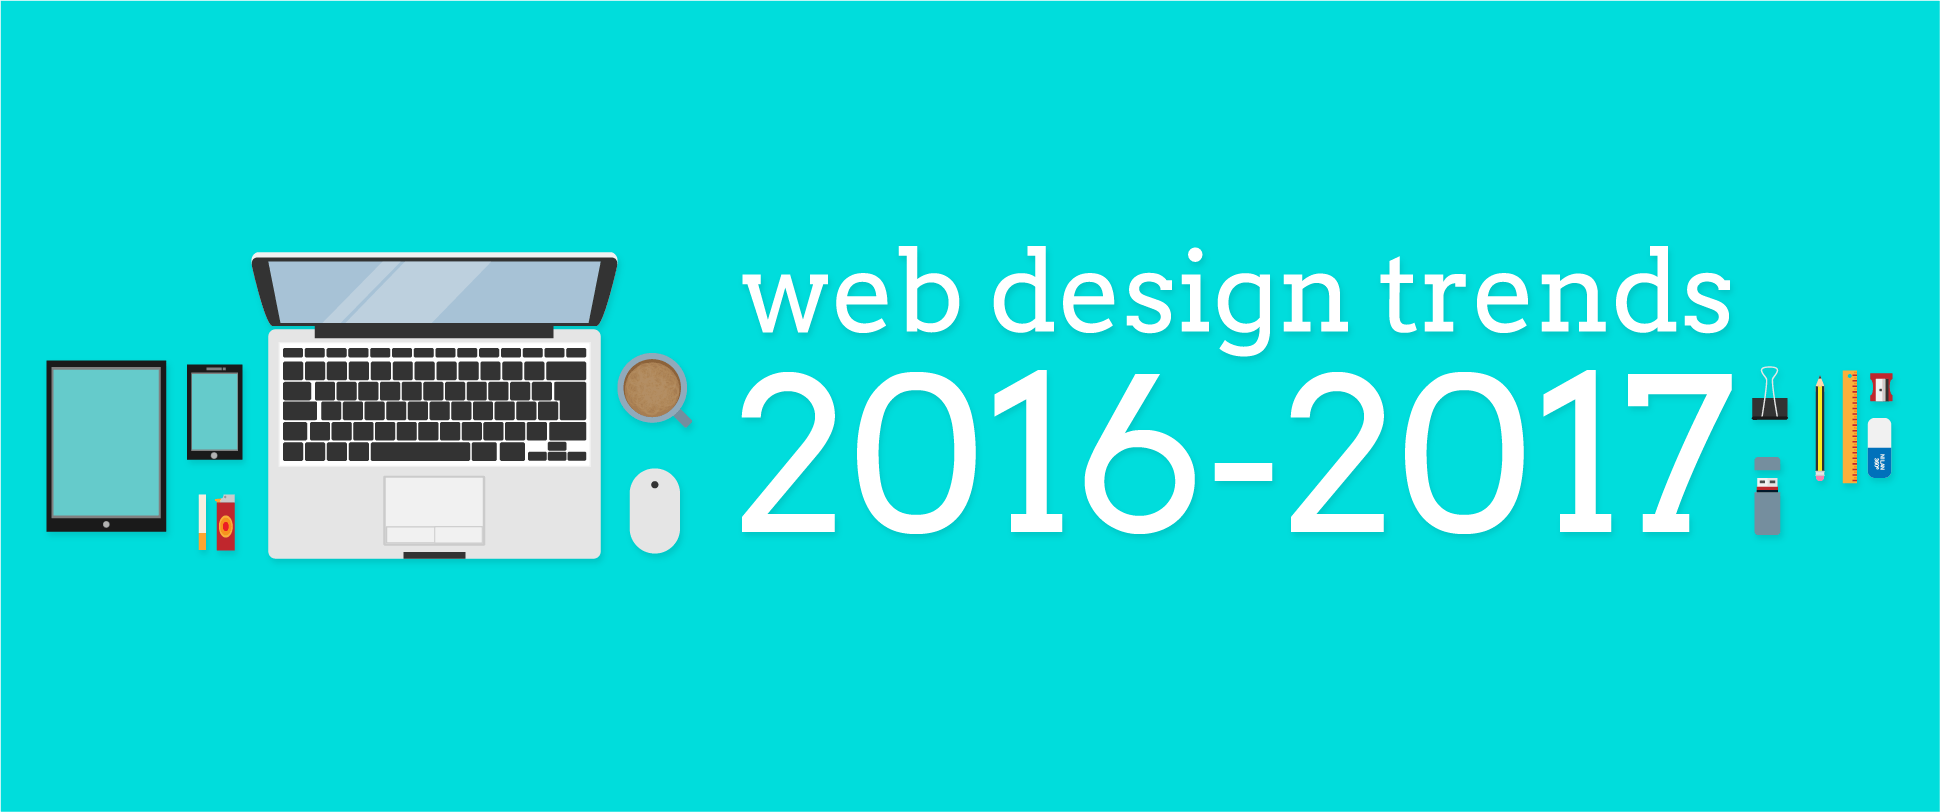 Trend Desain 2017 Prediction For Top 6 Web Design Trends In 2017